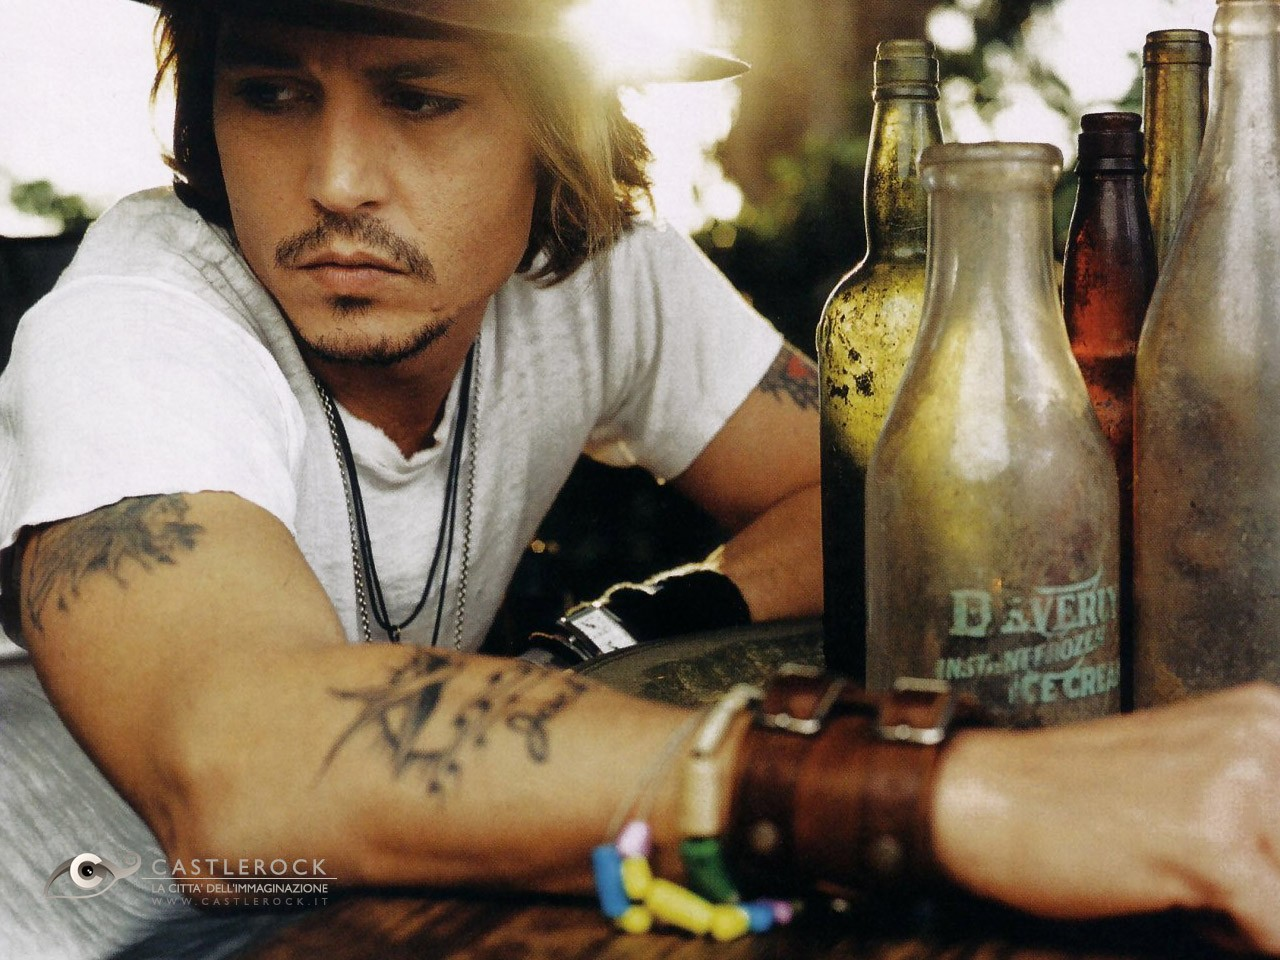 286a6cb96dc33 Favorite Celebrity Tattoo Design Johnny Depp represents the people in his  life